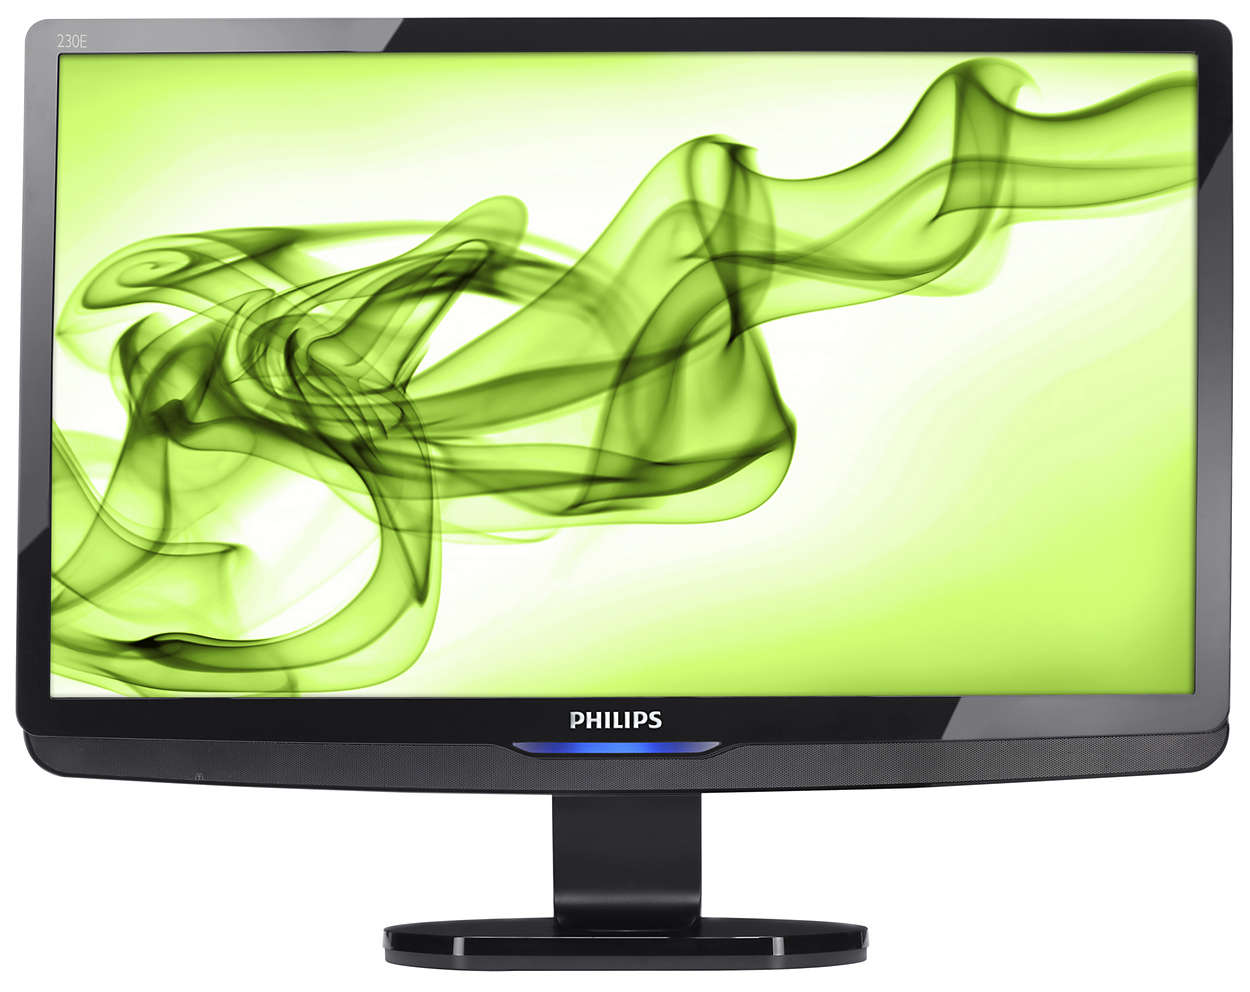 HDMI display for Full-HD entertainment